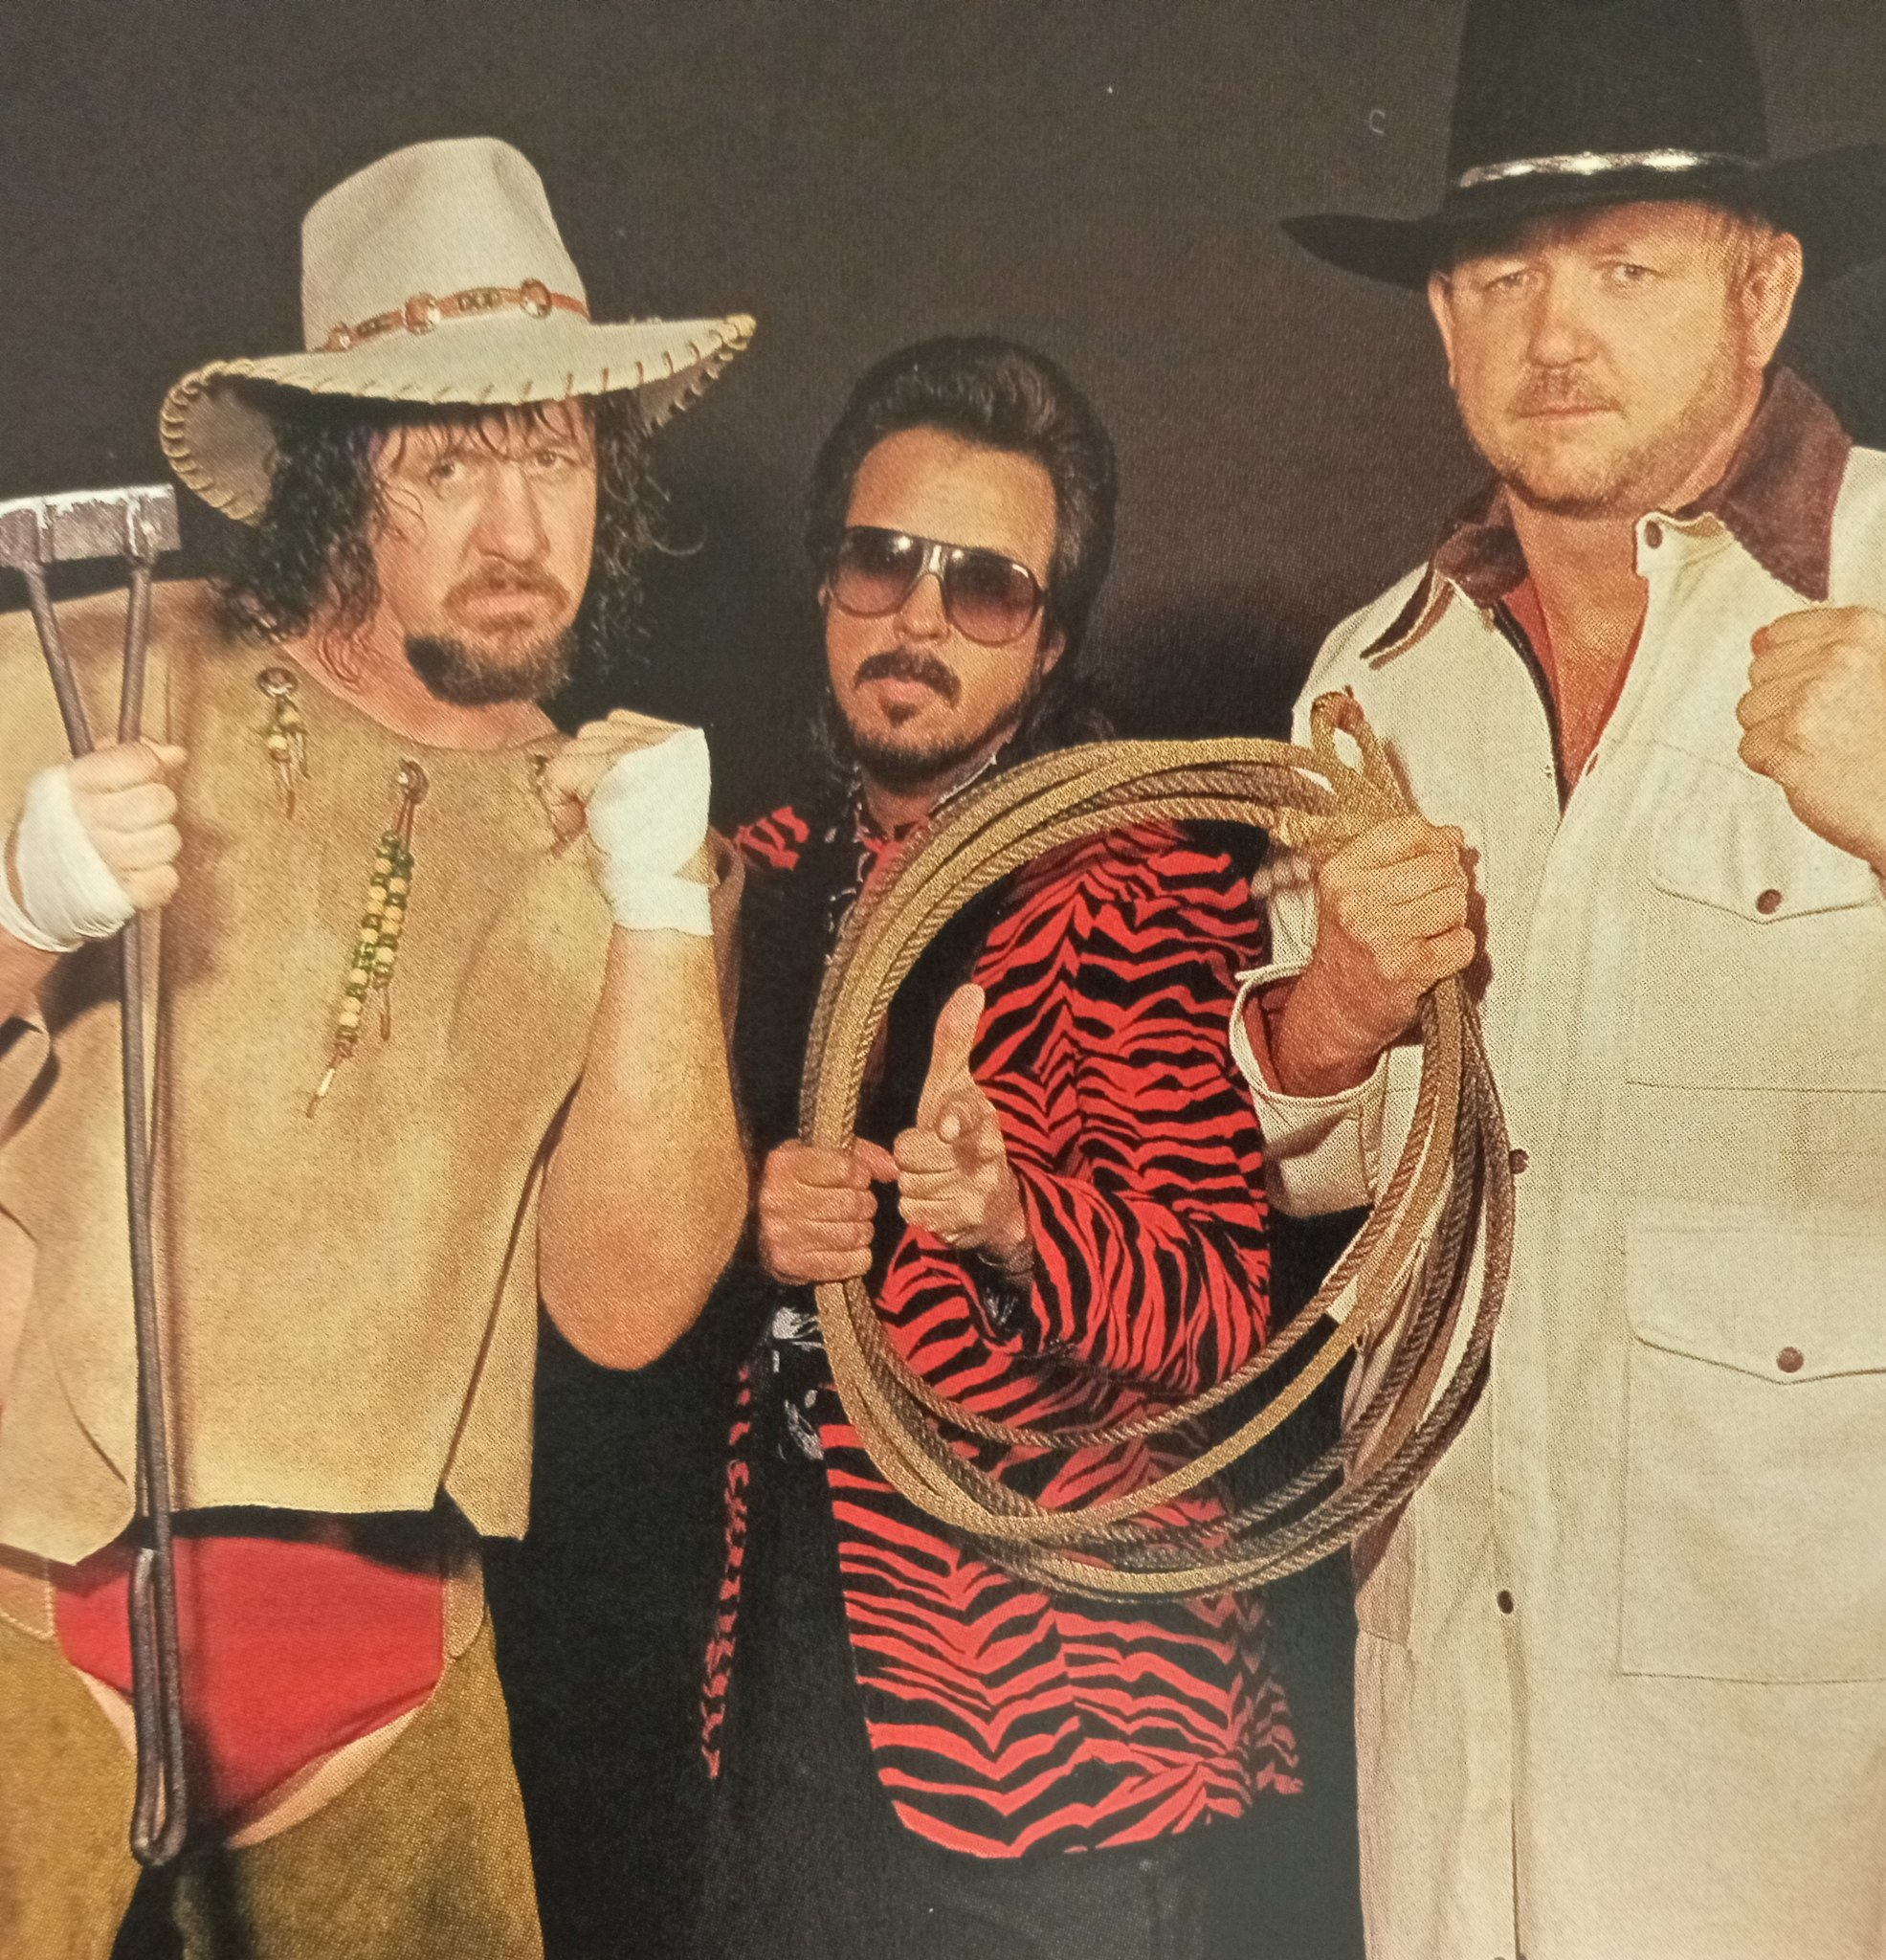 """Rasslin' History 101 on Twitter: """"Brothers Terry and Hoss(Dory Funk  Jr.)Funk,managed by Jimmy Hart back in 1986… """""""